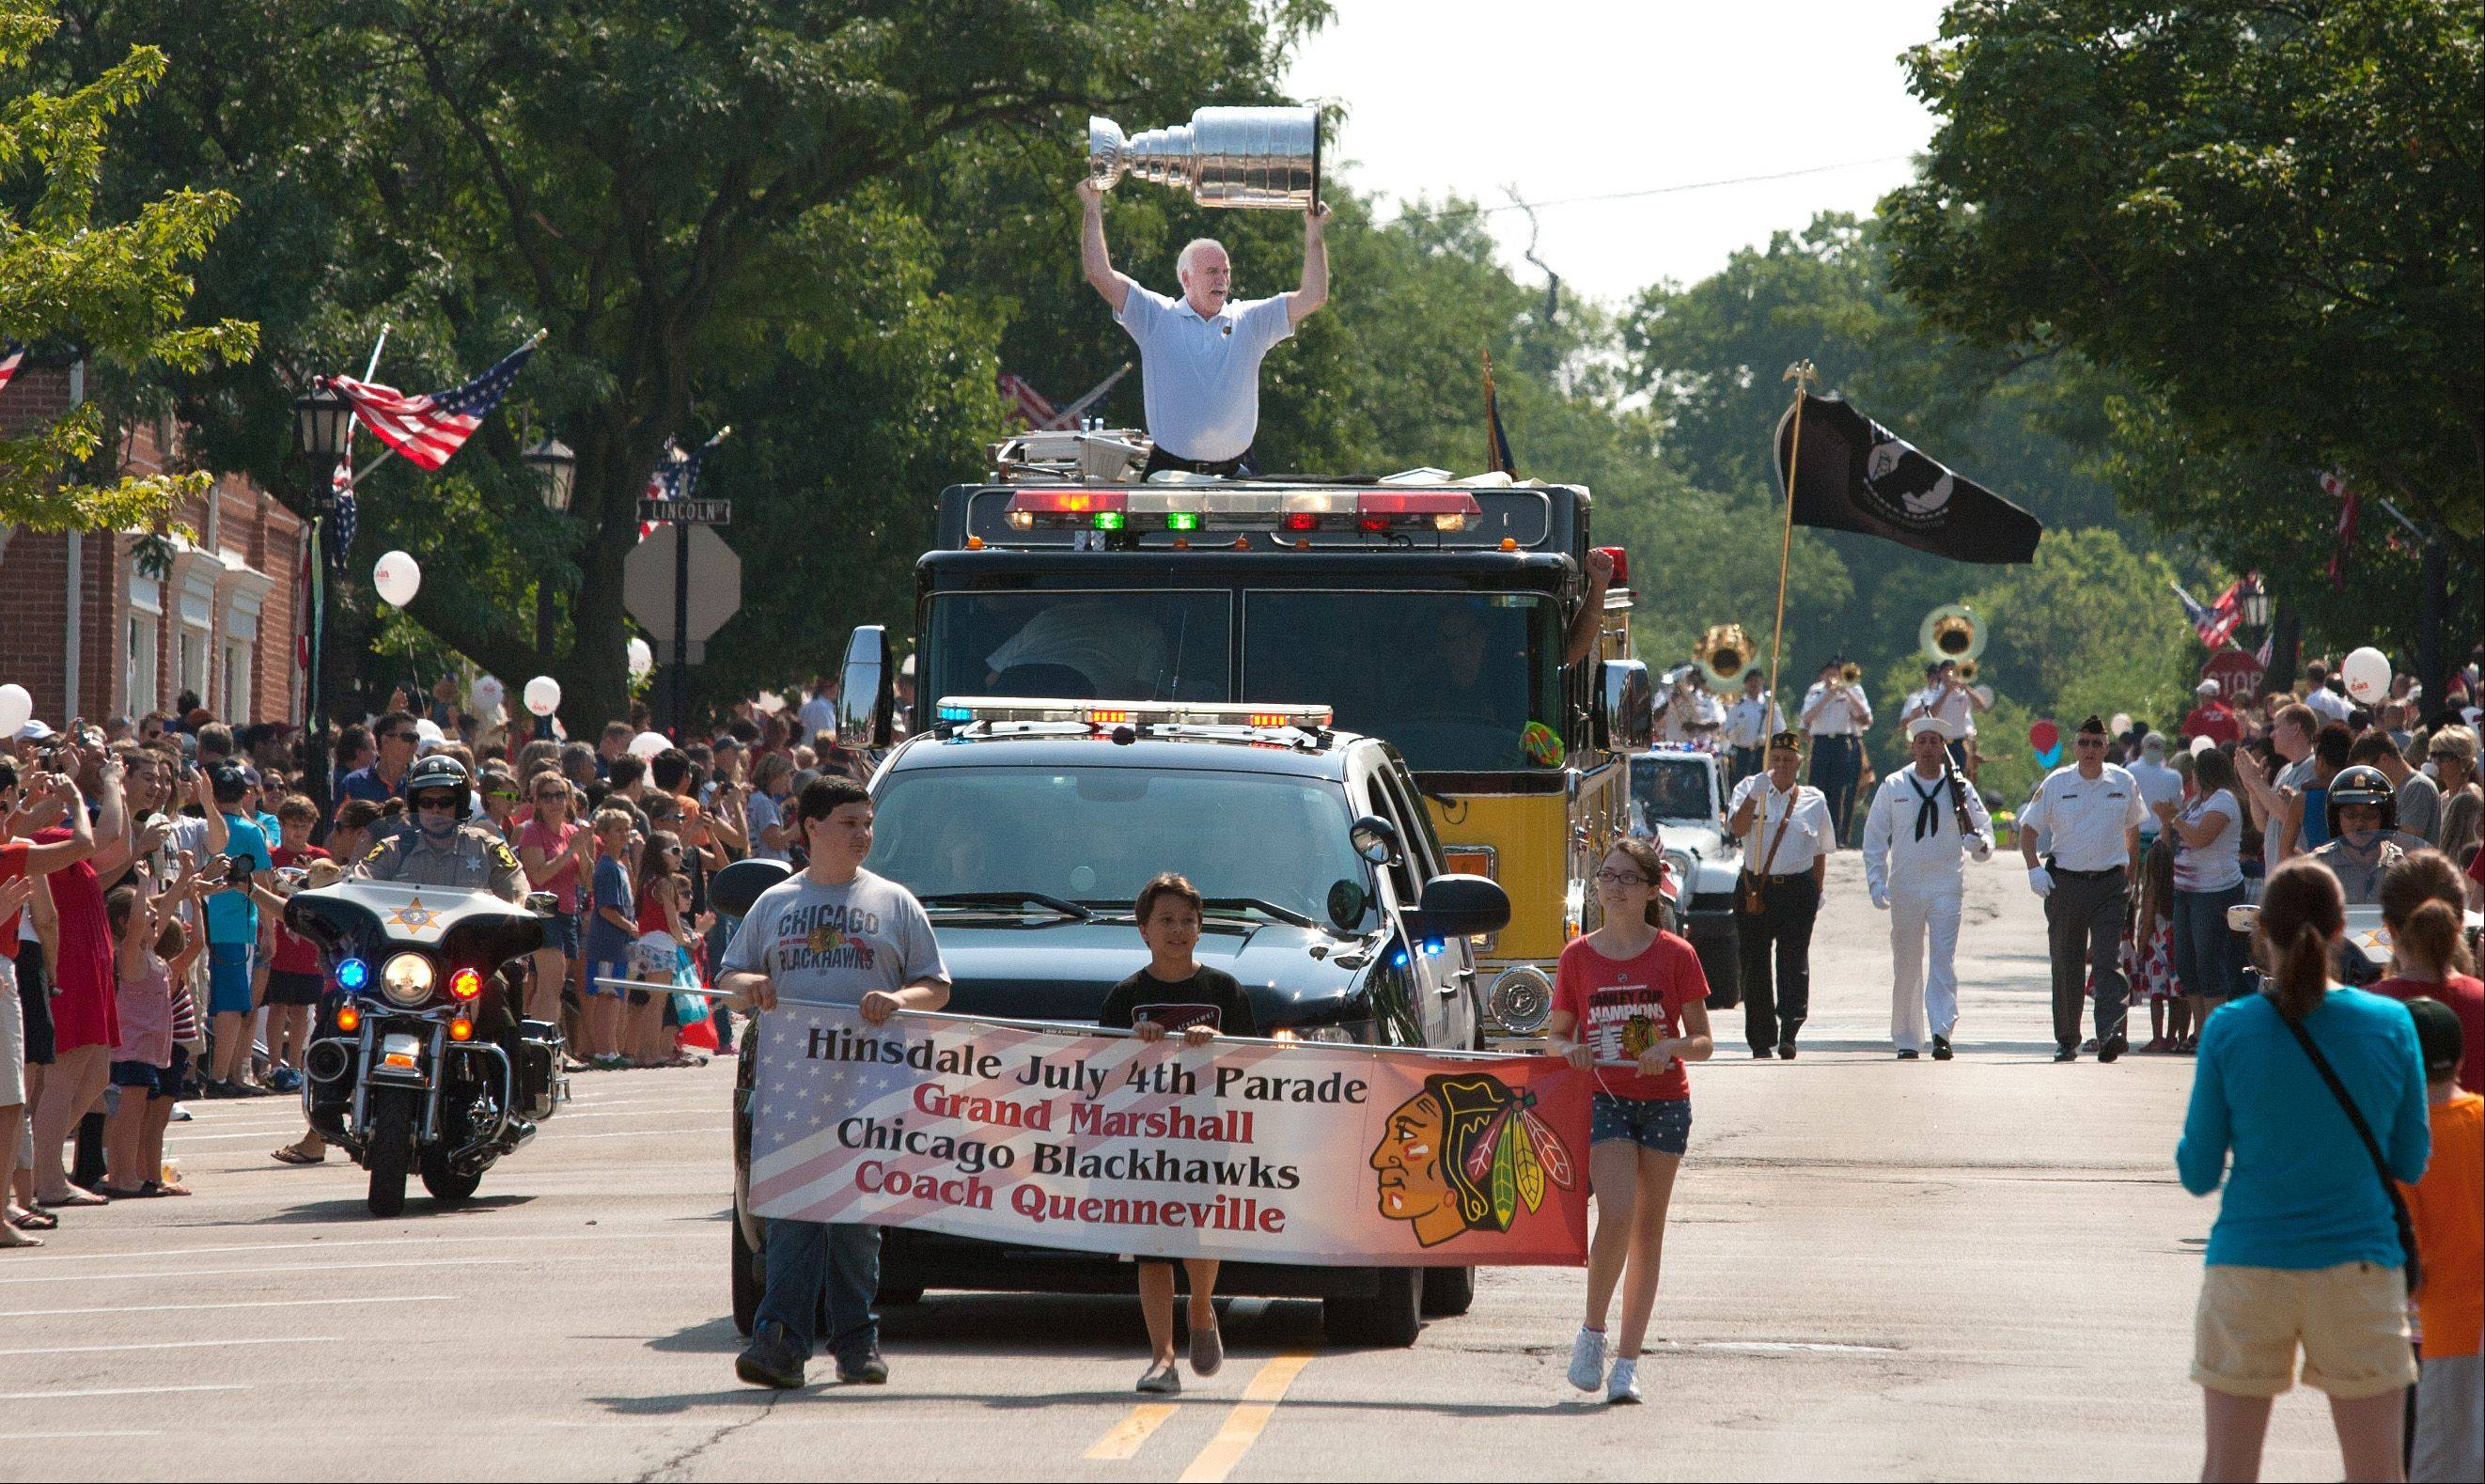 Chicago Blackhawk coach Joel Quenneville celebrates a Stanley Cup victory, as the grand marshall thrills his hometown Hinsdale July Fourth parade route.